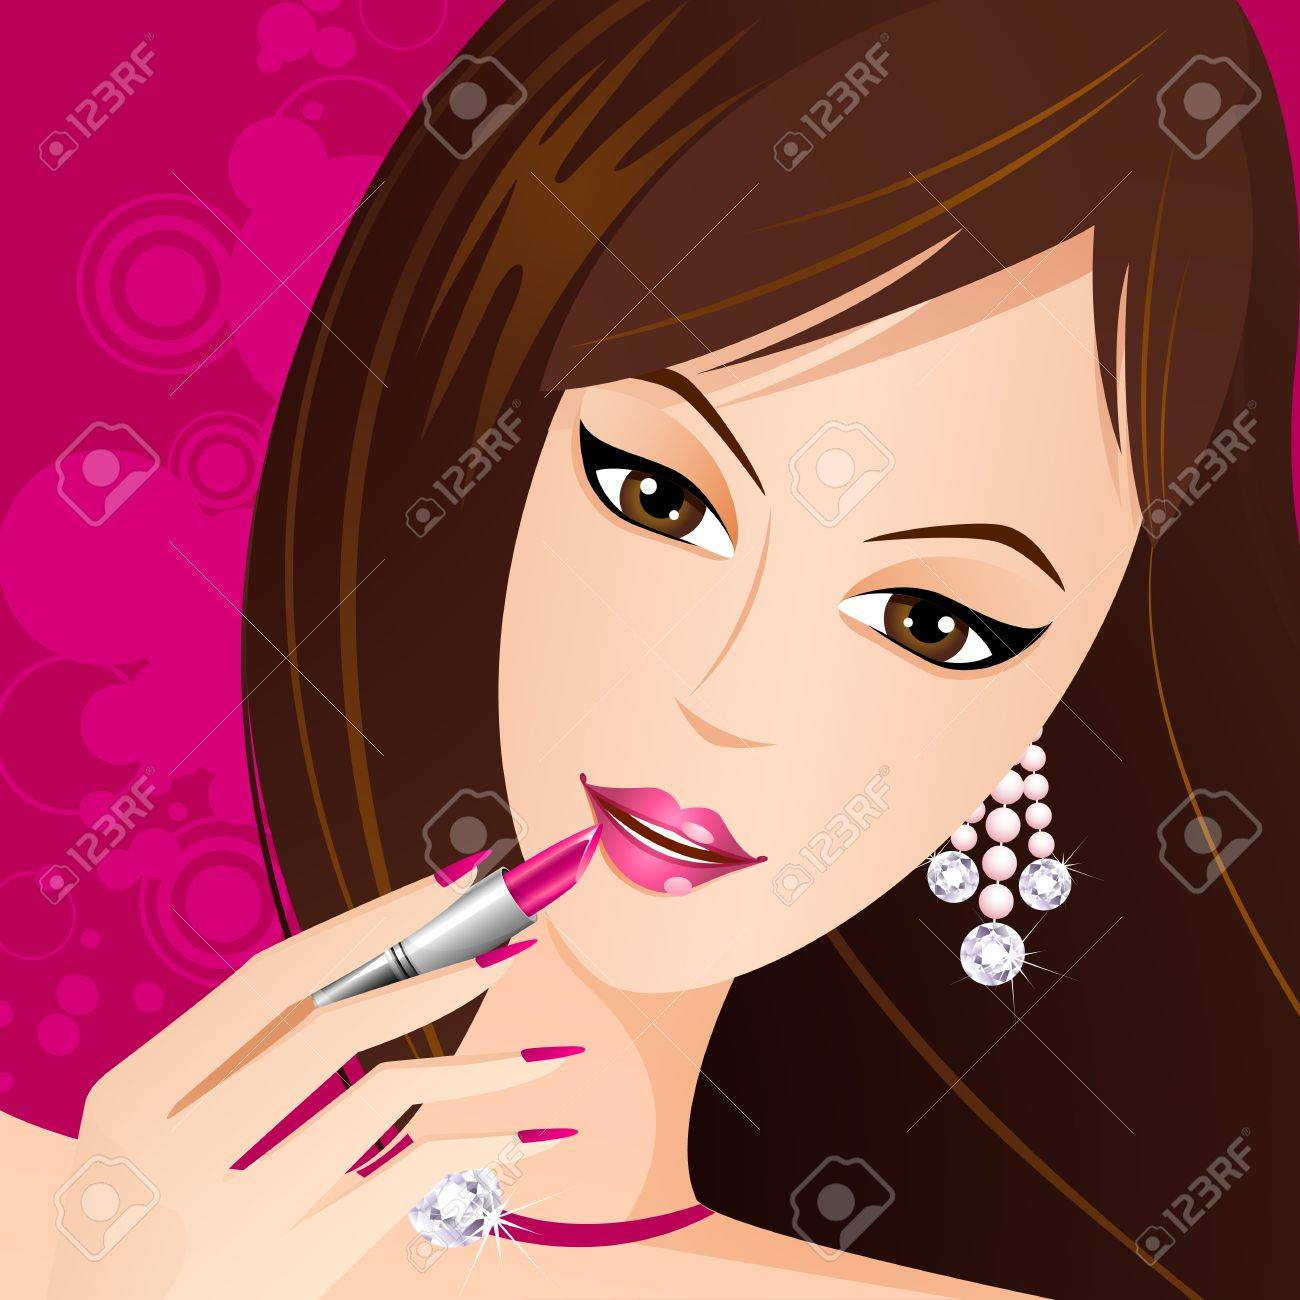 illustration of fashionable lady applying lipstick on lips Stock Vector - 11664869